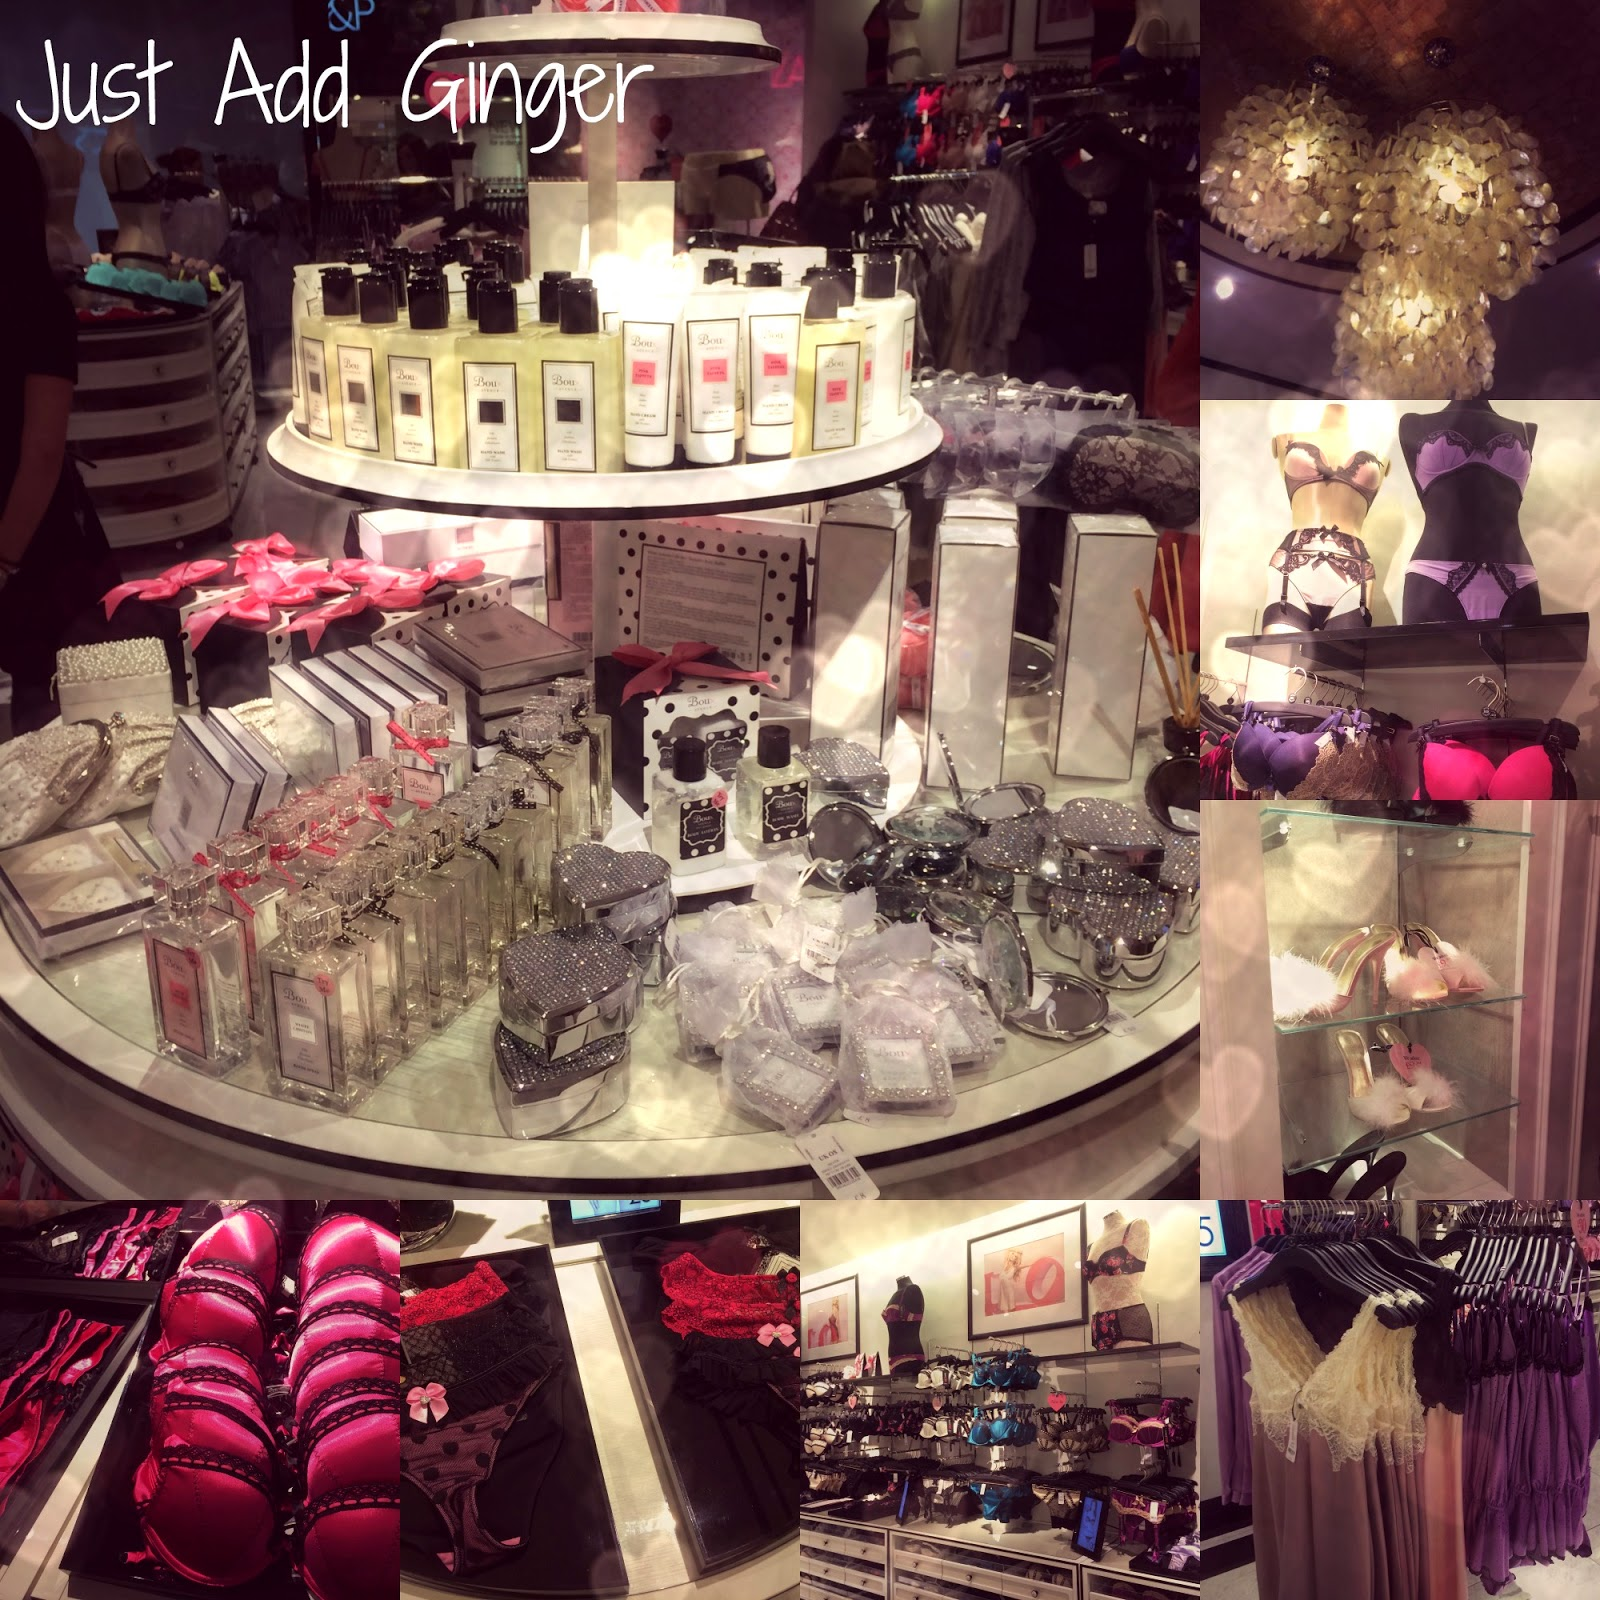 An Evening At Boux Avenue - Just Add Ginger